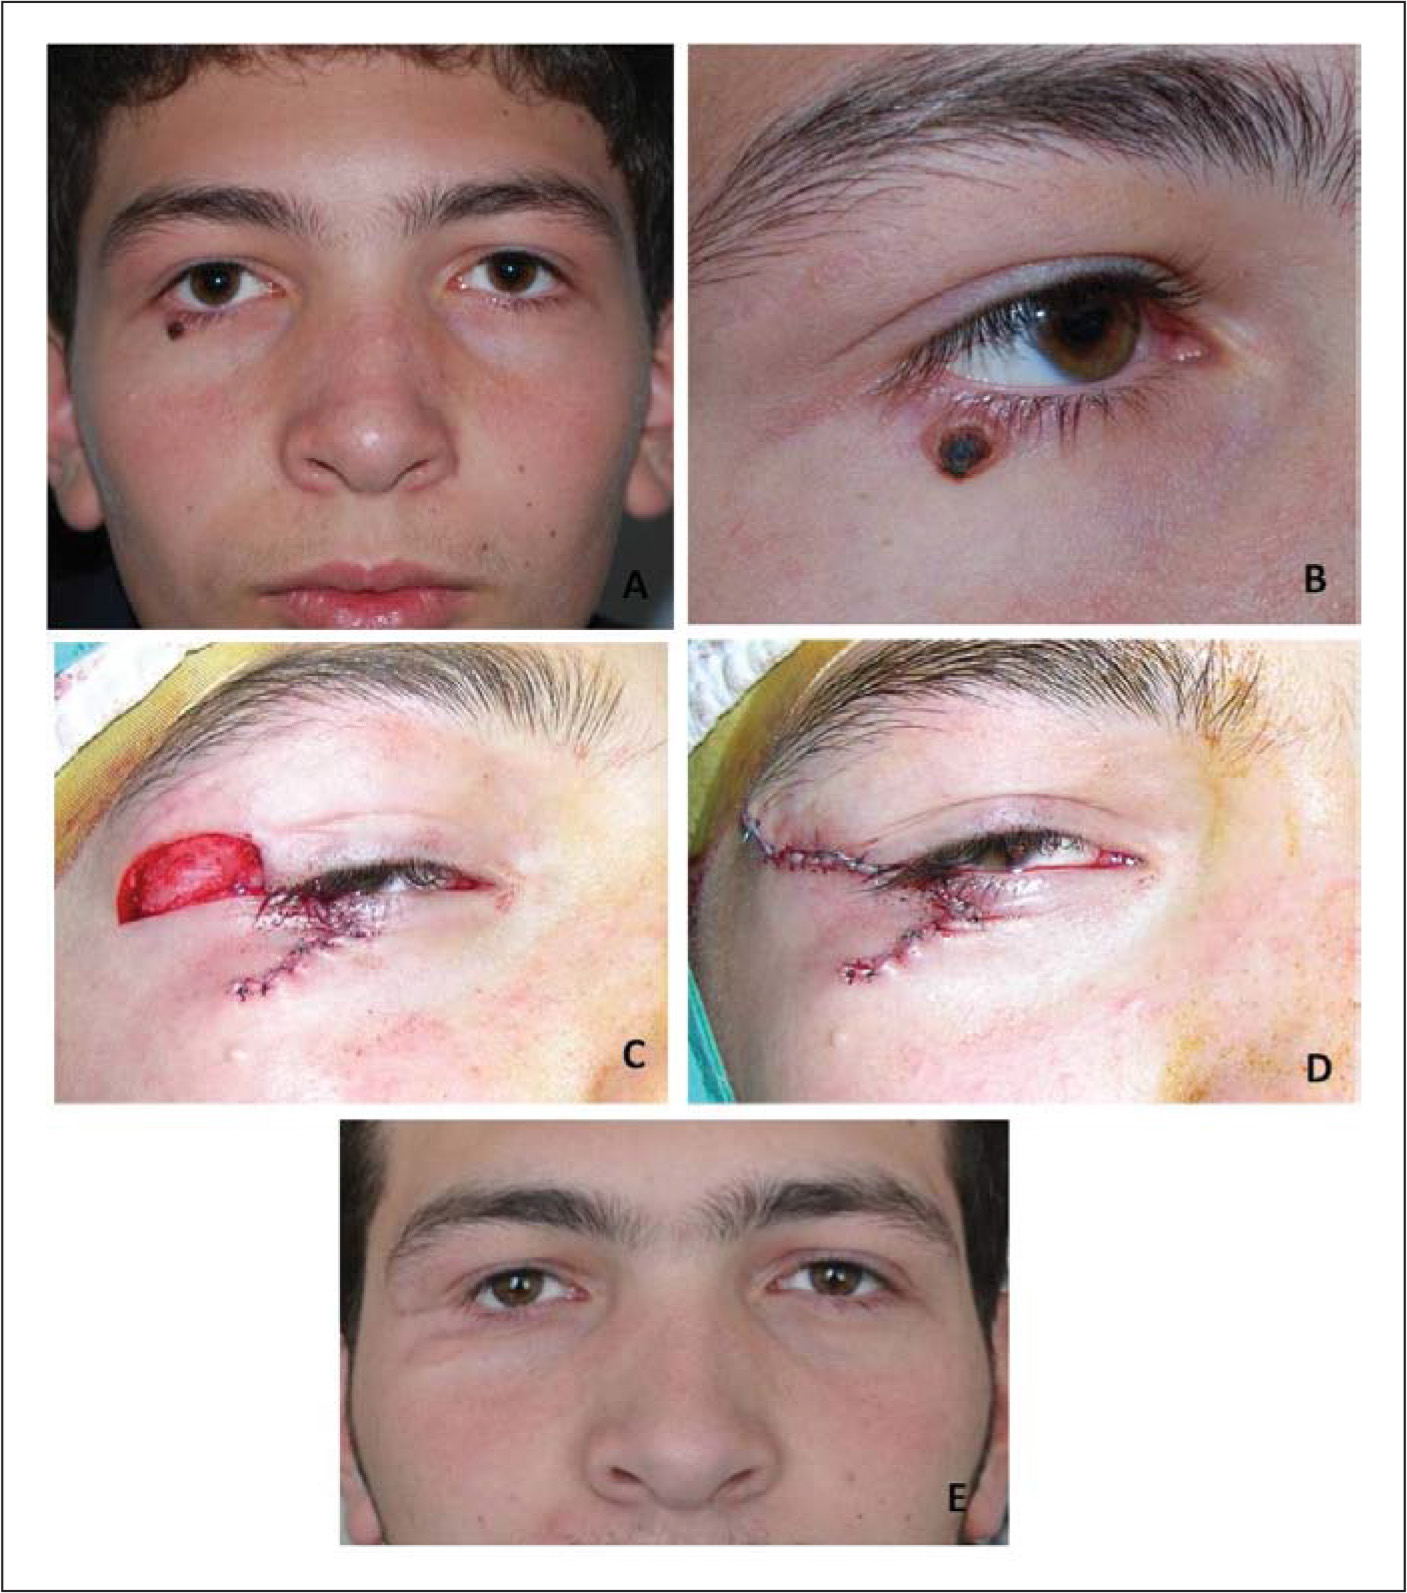 (A and B) Ulceronodular basal cell carcinoma in the right lower eyelid of a 14-year-old healthy boy. (C and D) The excisional eyelid defect was reconstructed with a semicircular flap. (E) There was no tumor recurrence or any other disease at 44 months after surgery, but the periocular scar was still visible.